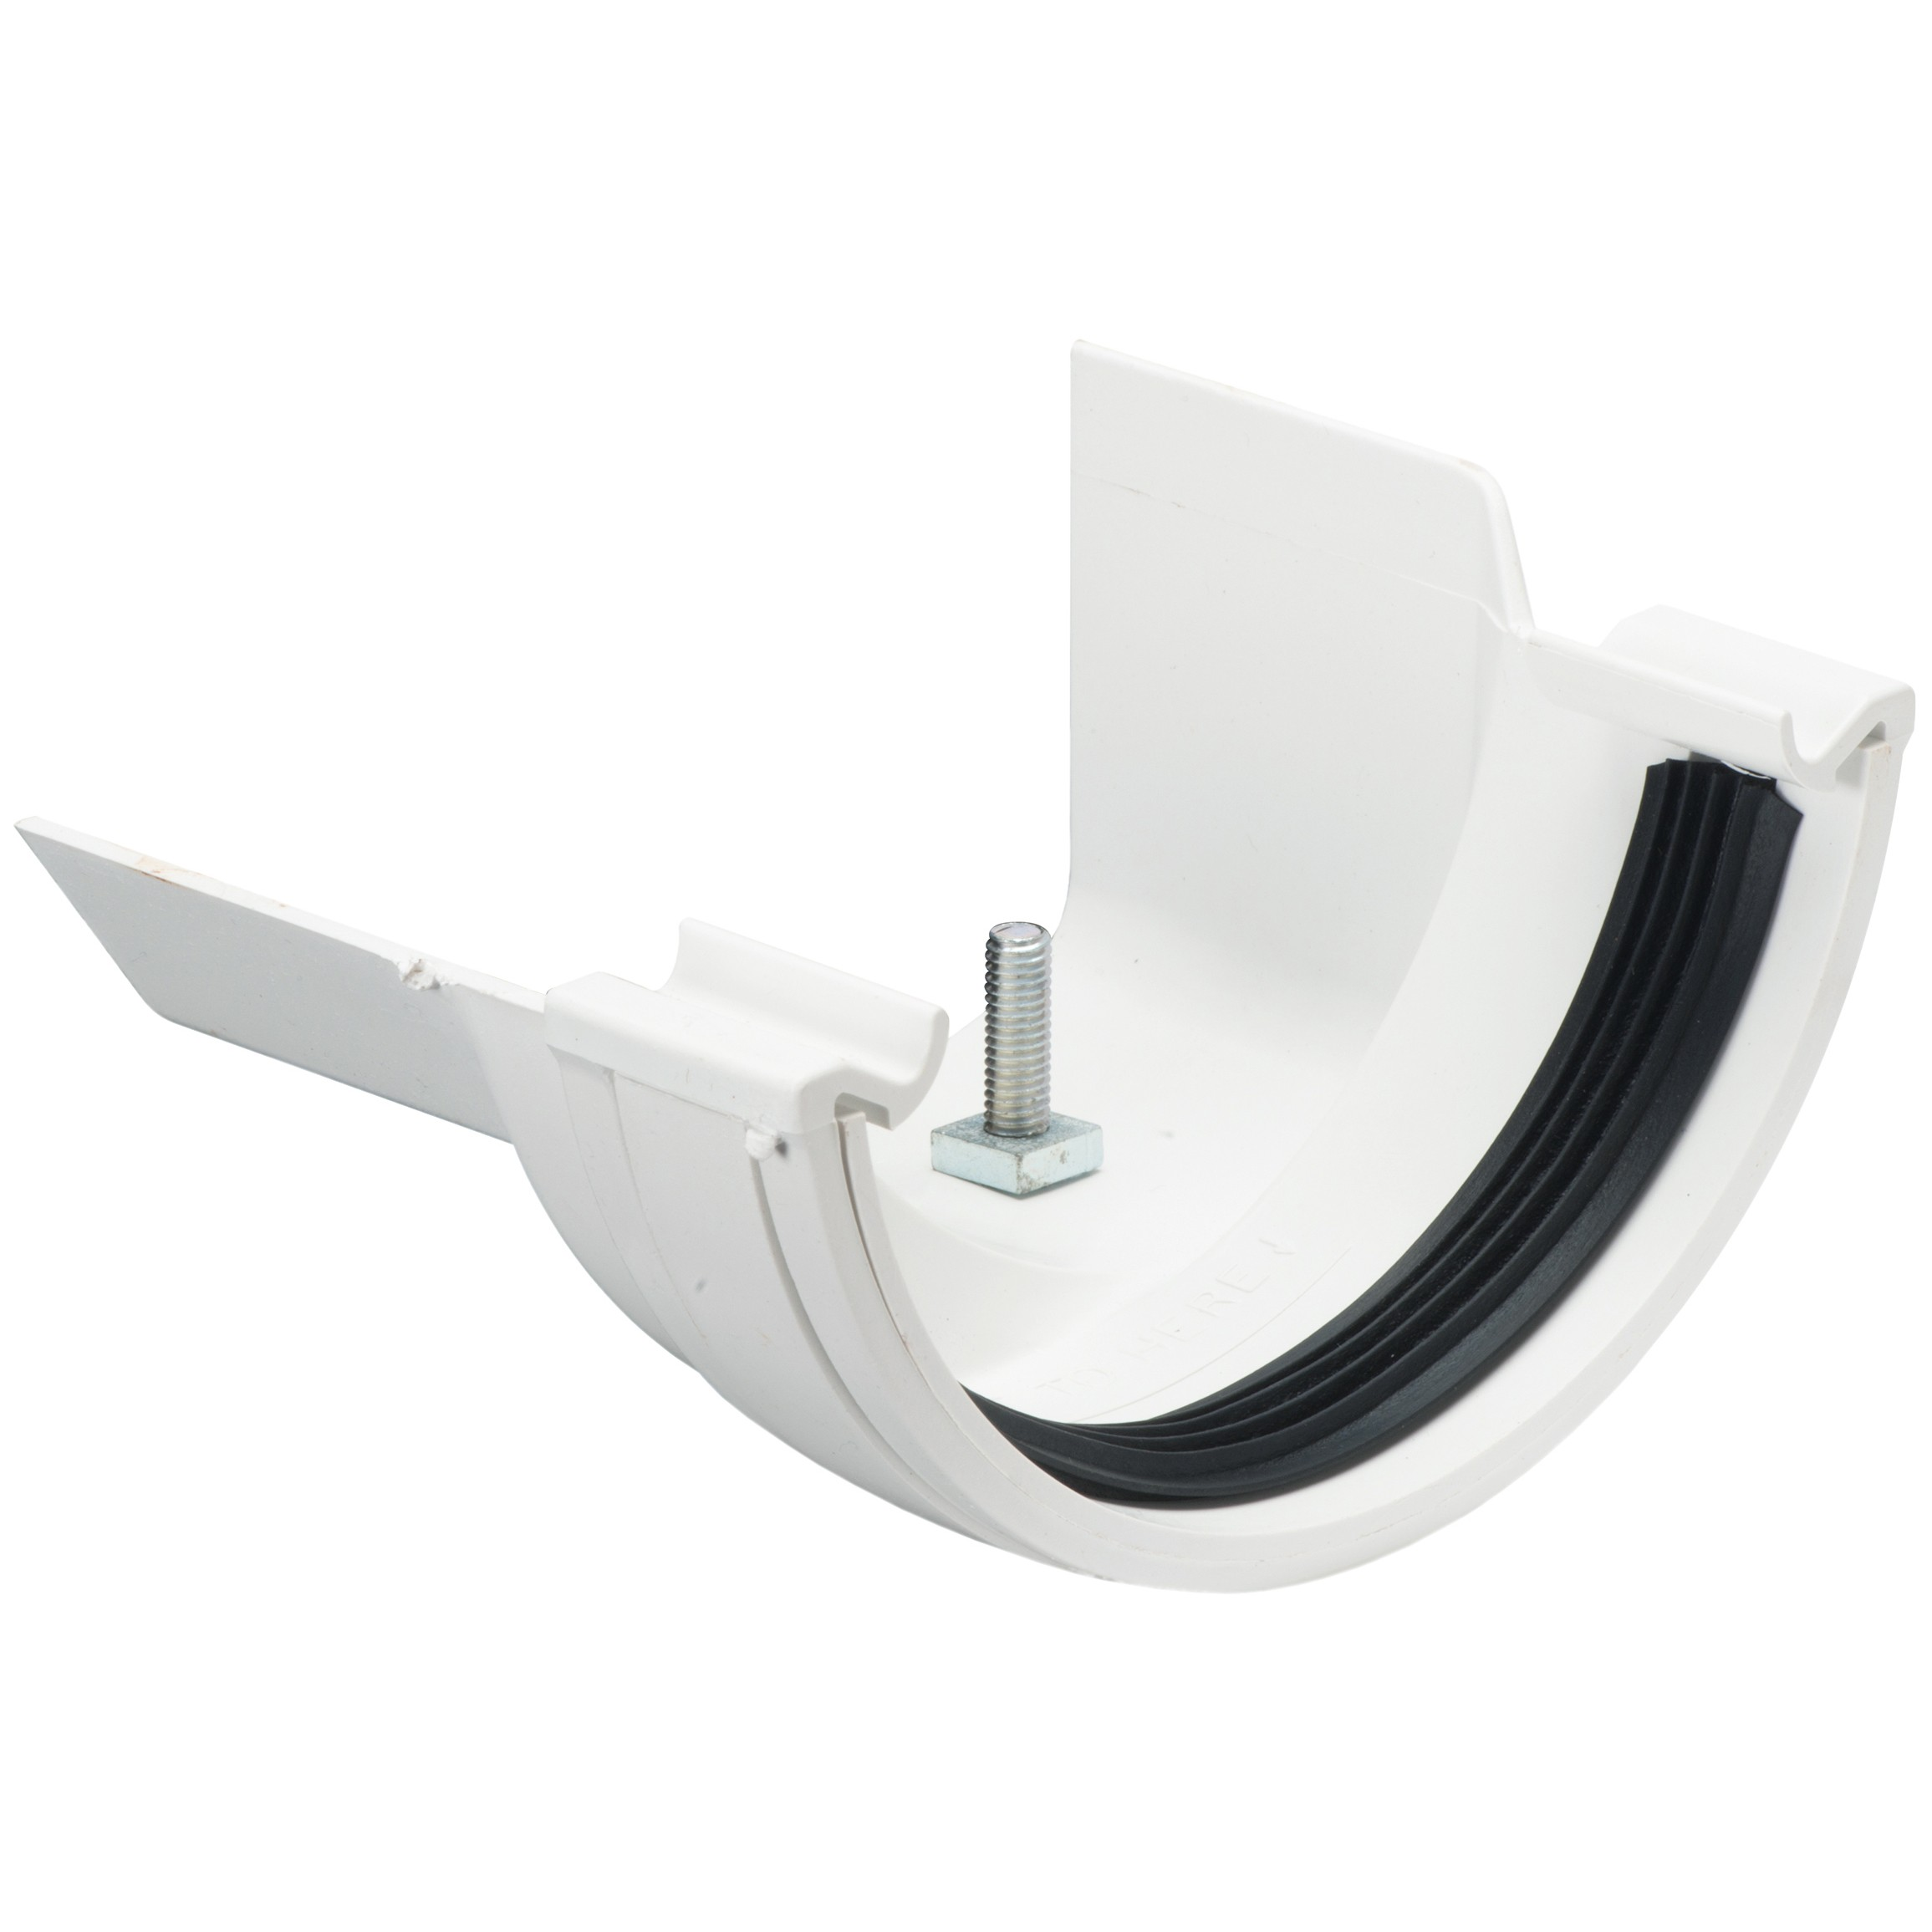 Polypipe 112mm Half Round to Metal 130mm Ogee Gutter Adaptor (Left Hand) - White